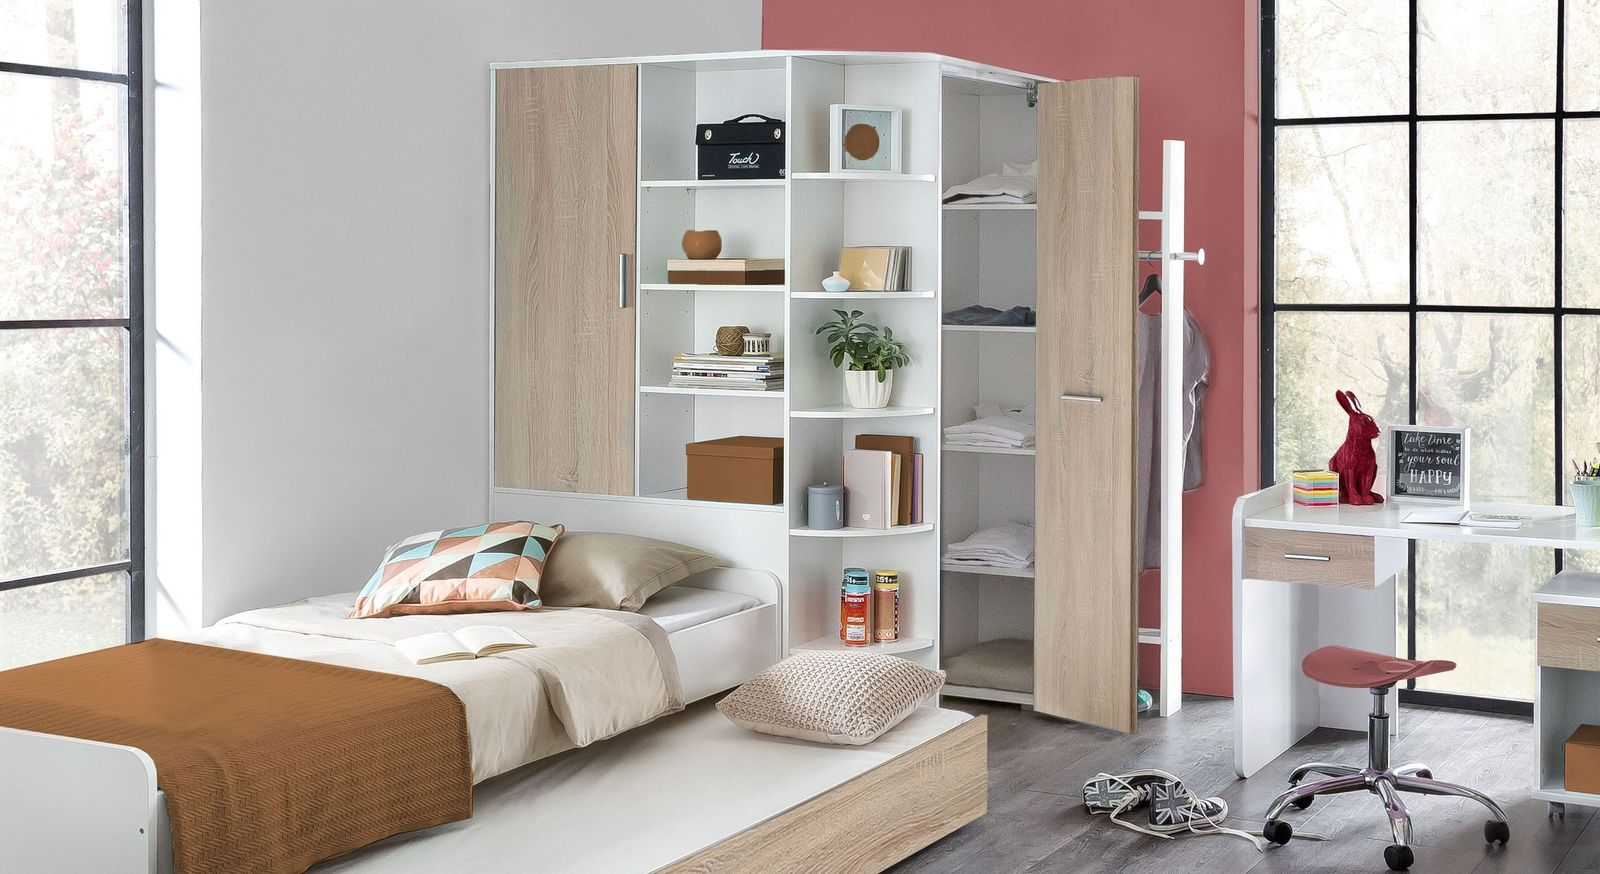 begehbarer eck kleiderschrank f r kinder jugendliche solero. Black Bedroom Furniture Sets. Home Design Ideas